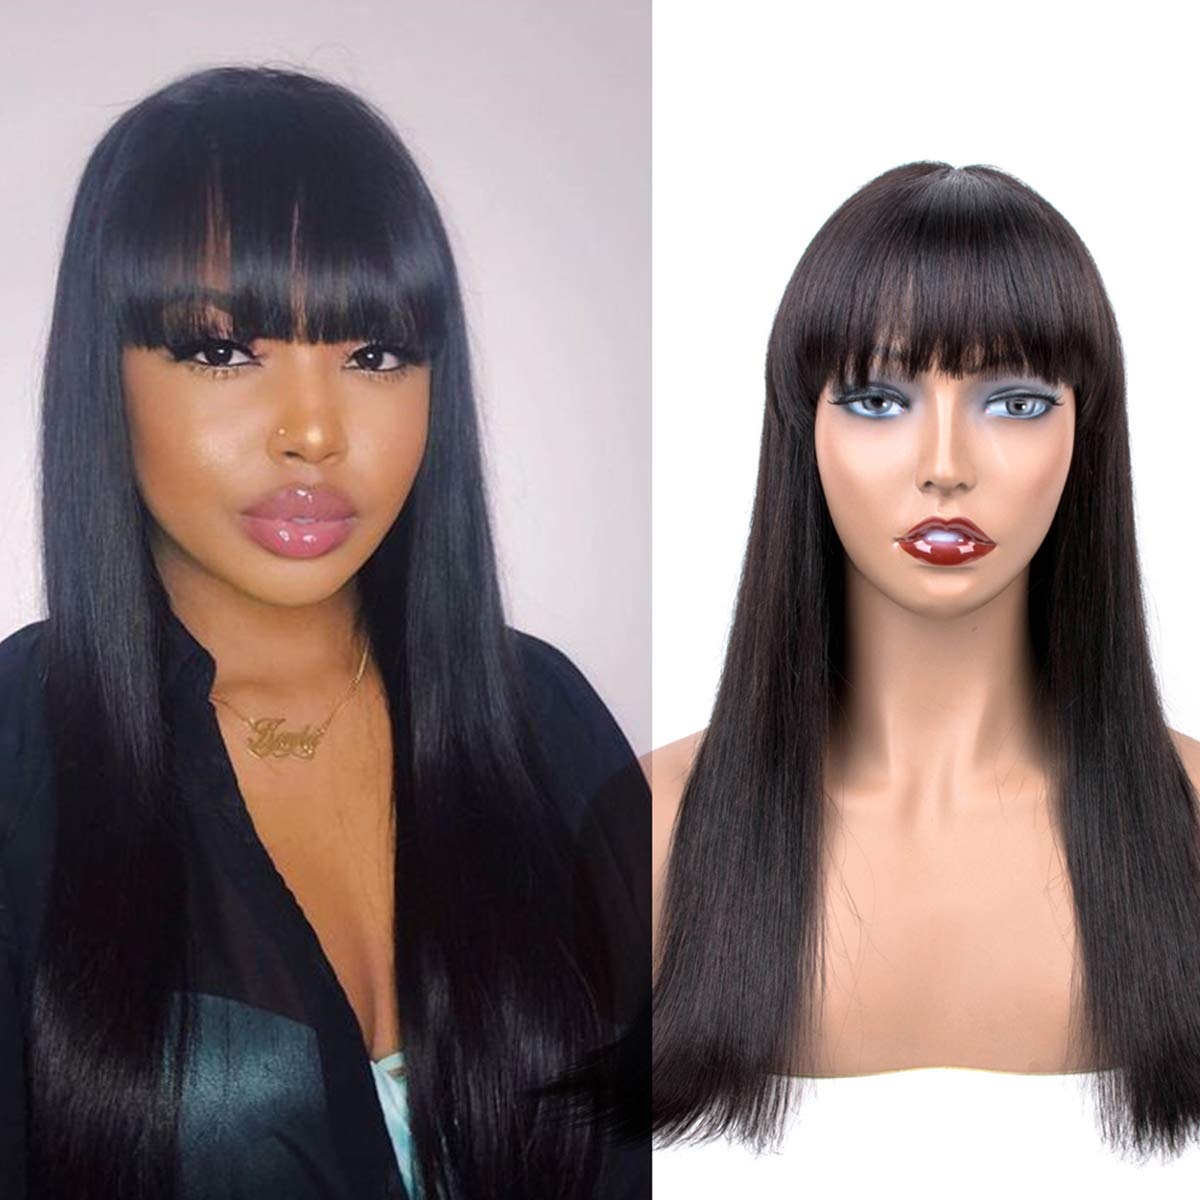 Amazon Com Human Hair Wigs With Bangs 20inch Original Queen Straight Wigs Brazilian Unprocessed Virgin Hair Machine Made None Lace Wigs With Elastic Bands Beauty